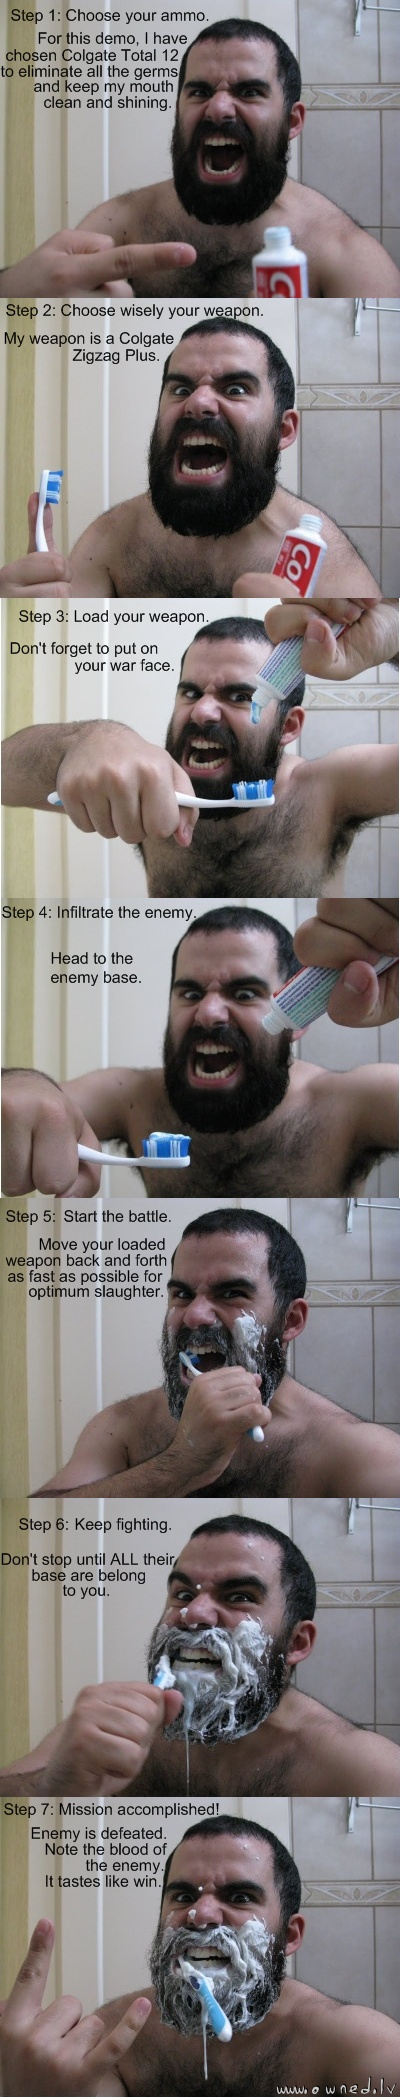 Hardcore tooth brushing